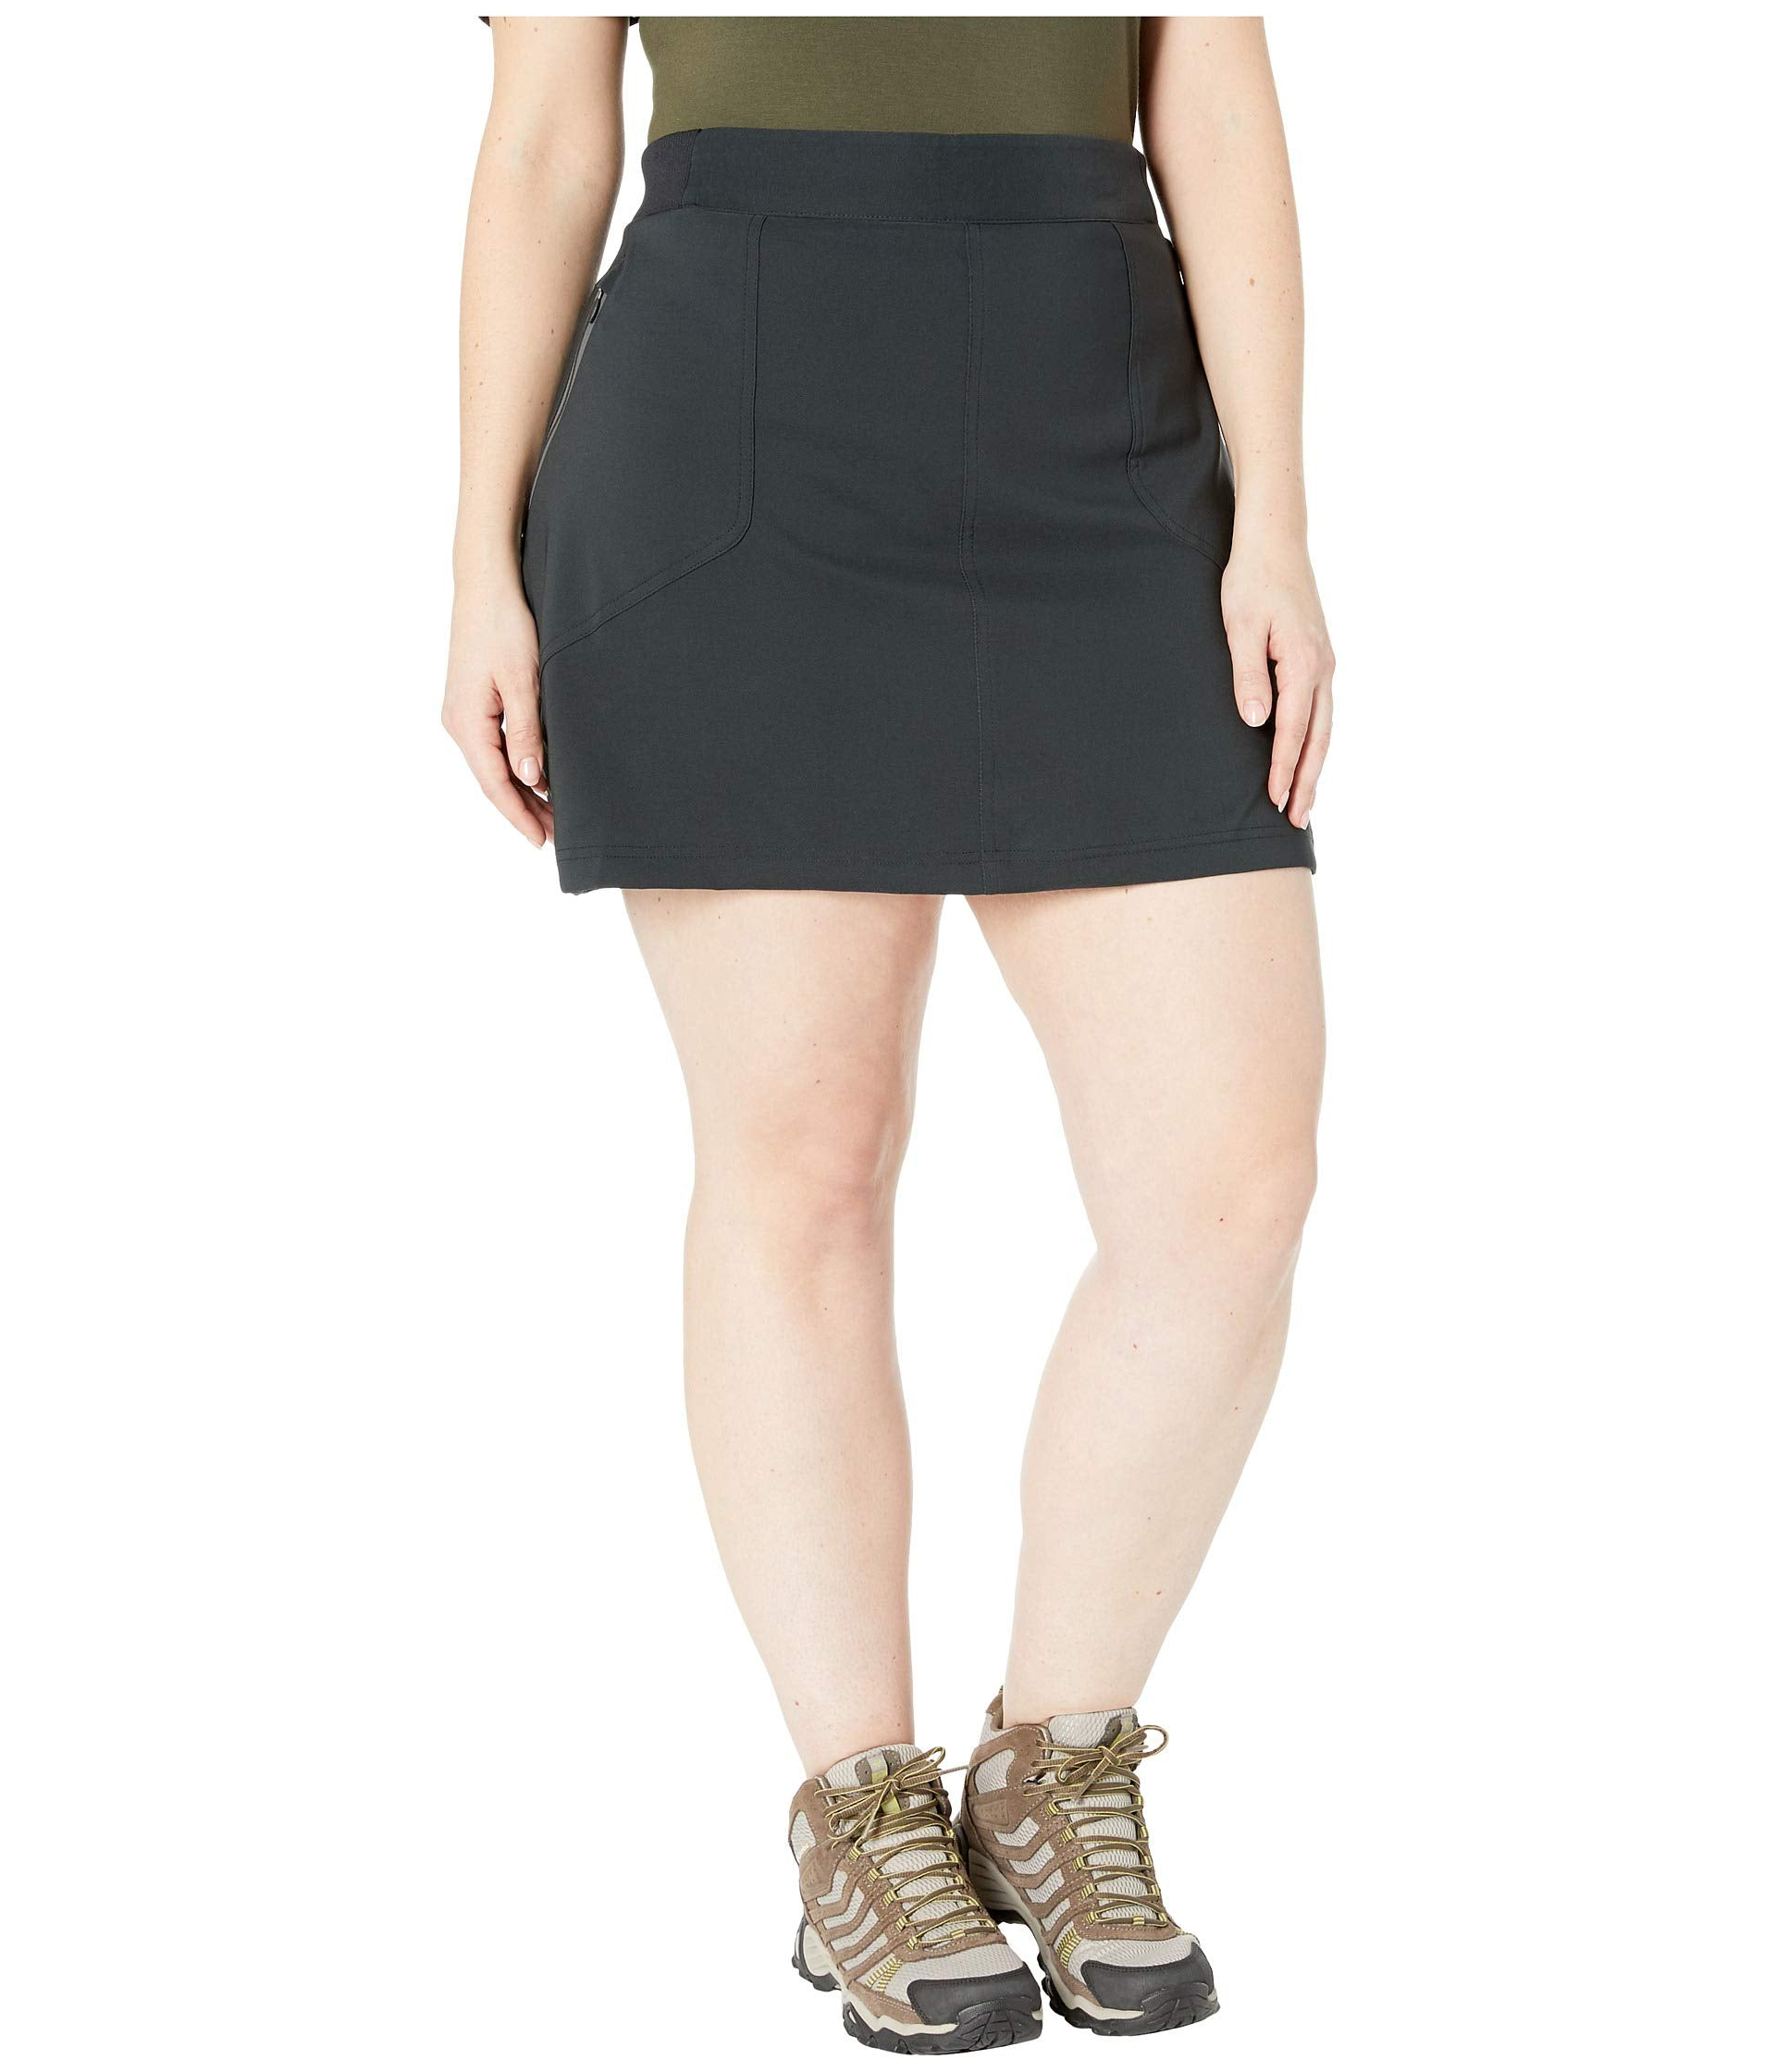 Plus Size Bryce Canyon™ Skort